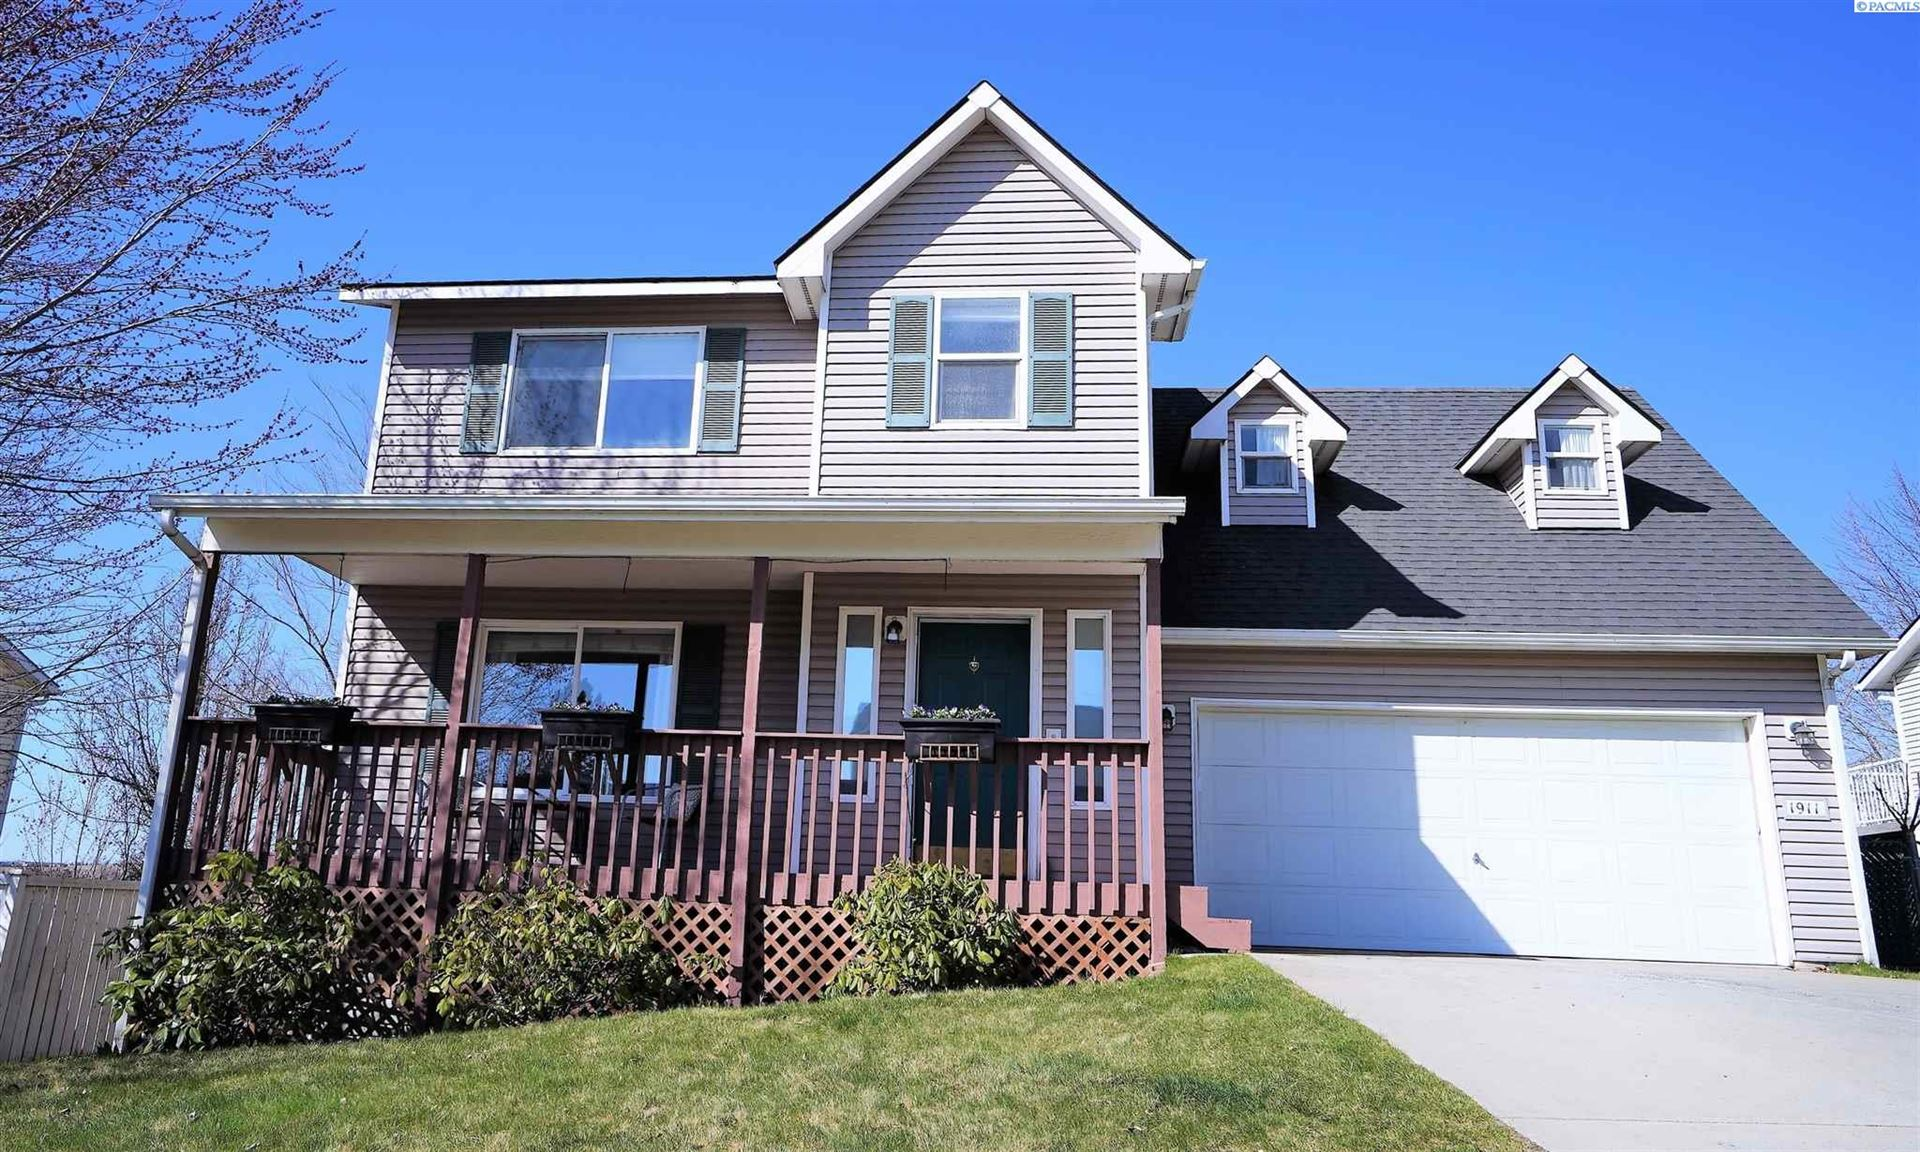 Photo of 1911 NW Canyon View, Pullman, WA 99163 (MLS # 252889)